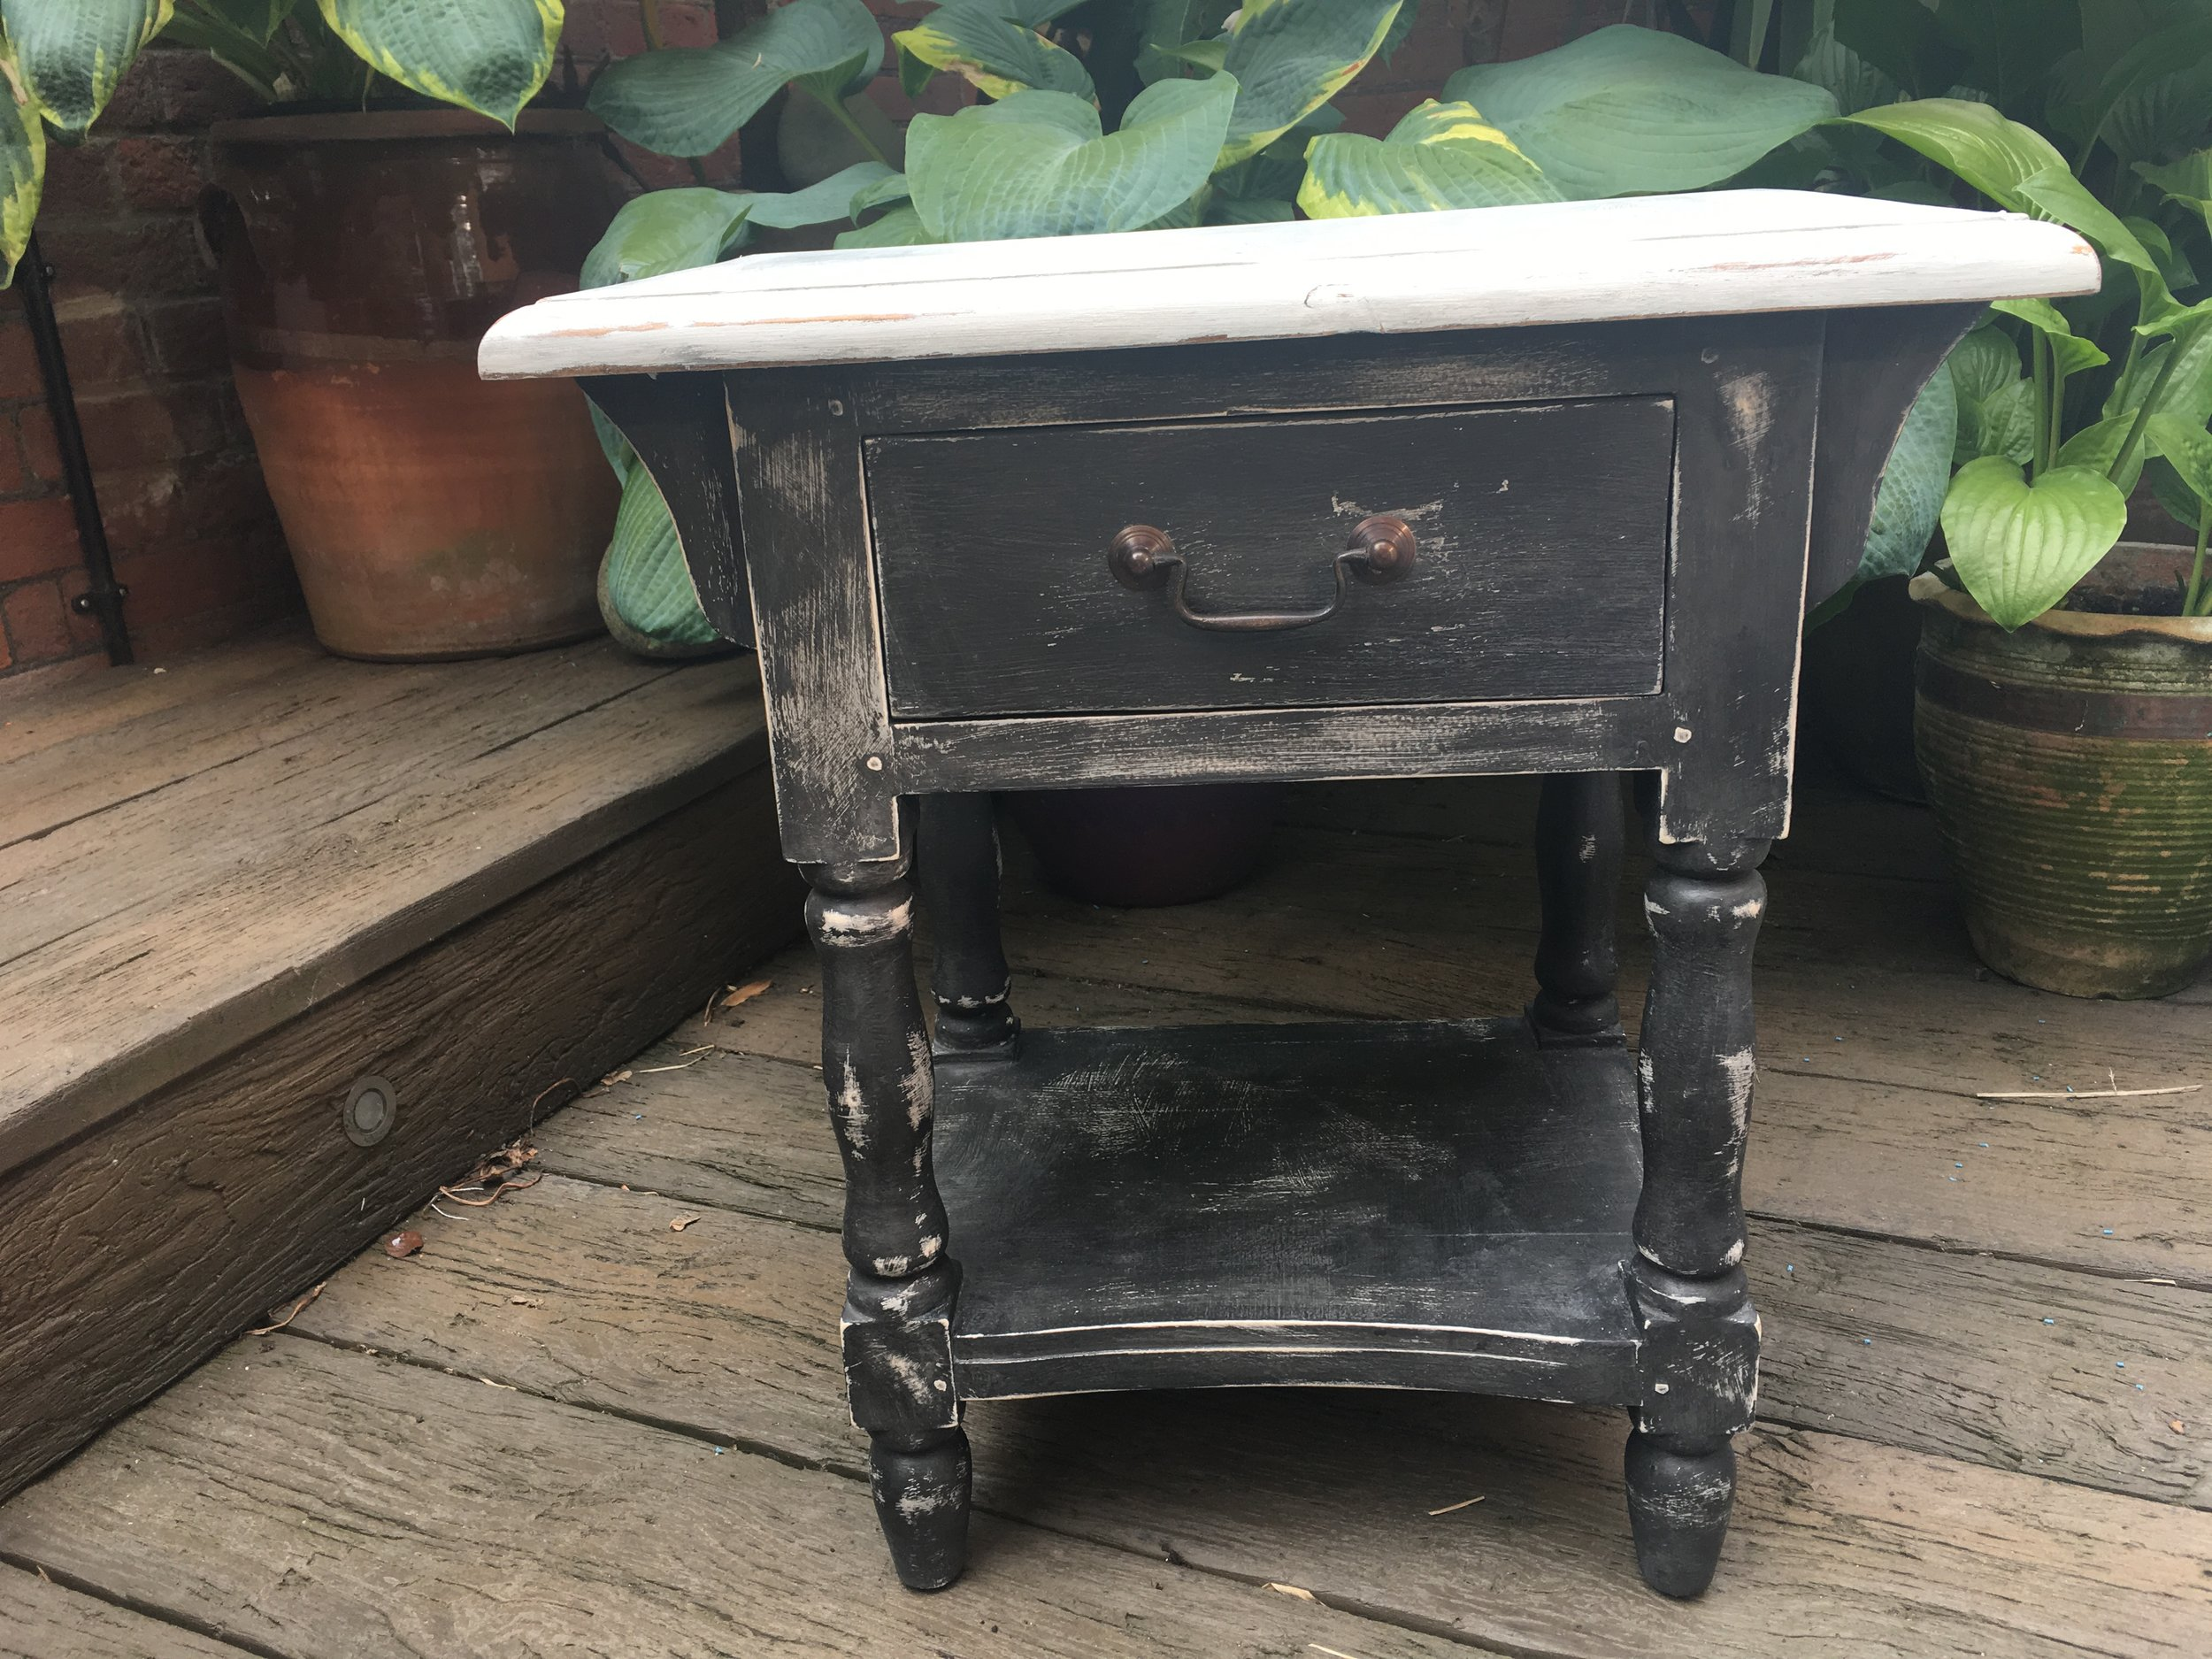 The units were painted in Annie Sloan Paris Grey with a final coat of Graphite, distressed back to show the Paris grey through. The tops are Paris grey.